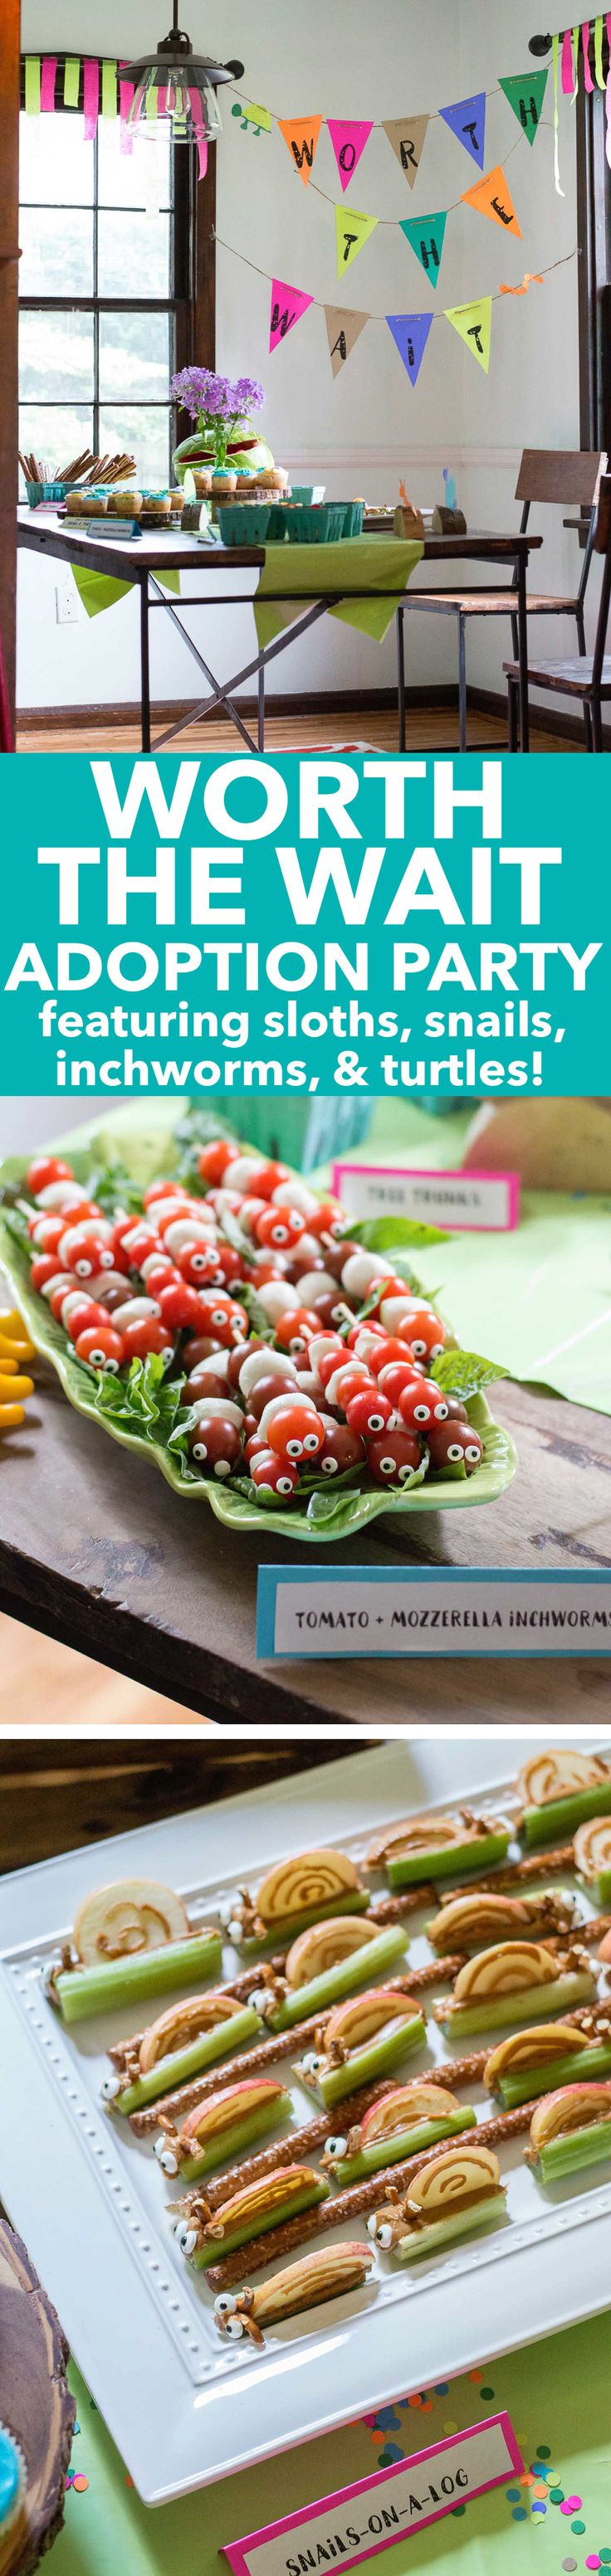 Worth the wait theme adoption party! Featuring slow animals - sloths, inchworms…